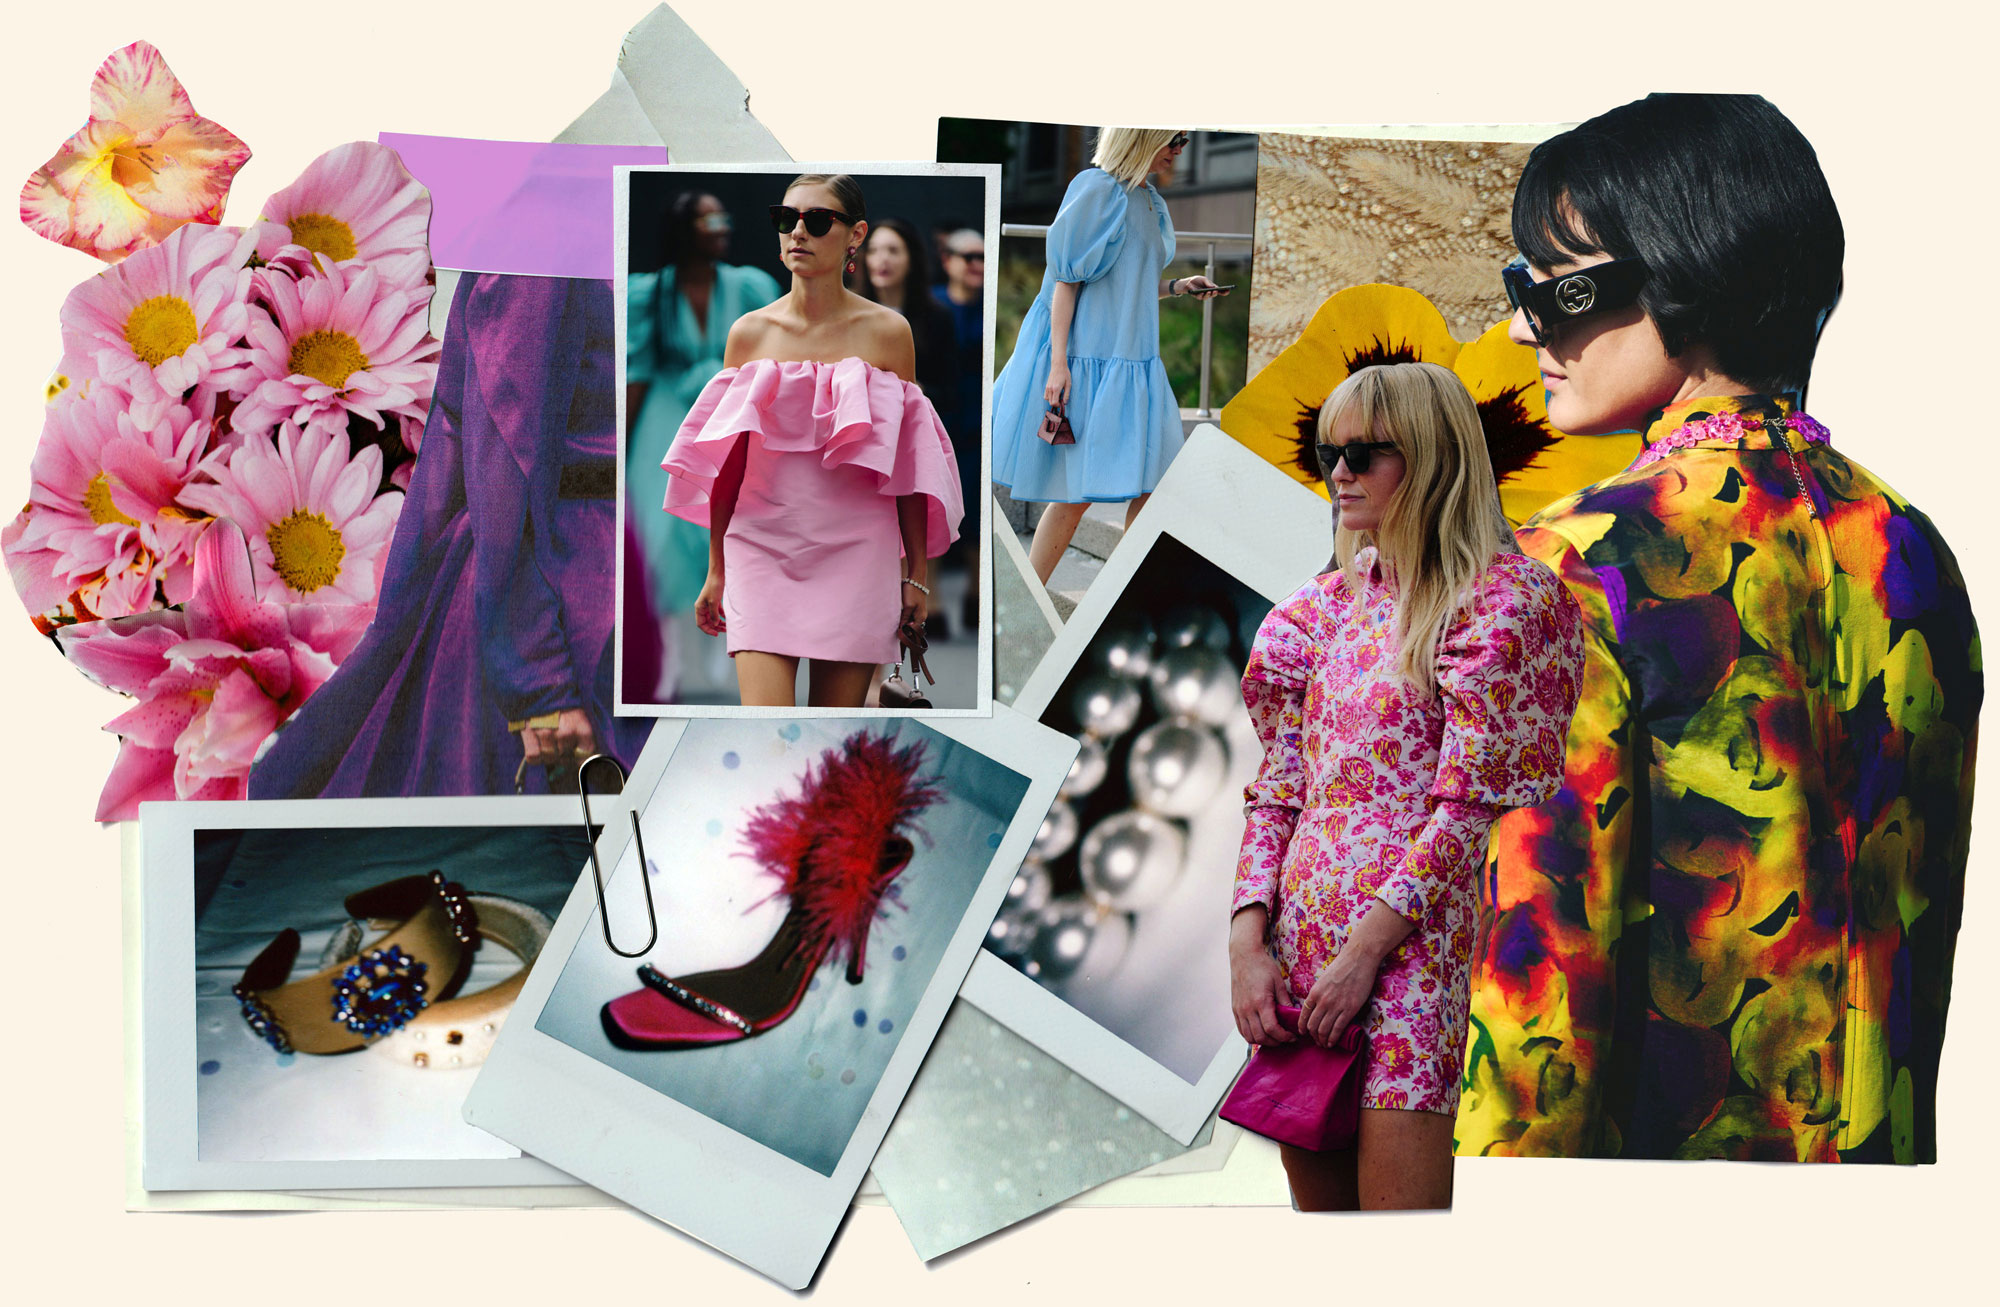 Collage of pictures of people in colourful clothes and Polaroids of pearls, shoes and headbands